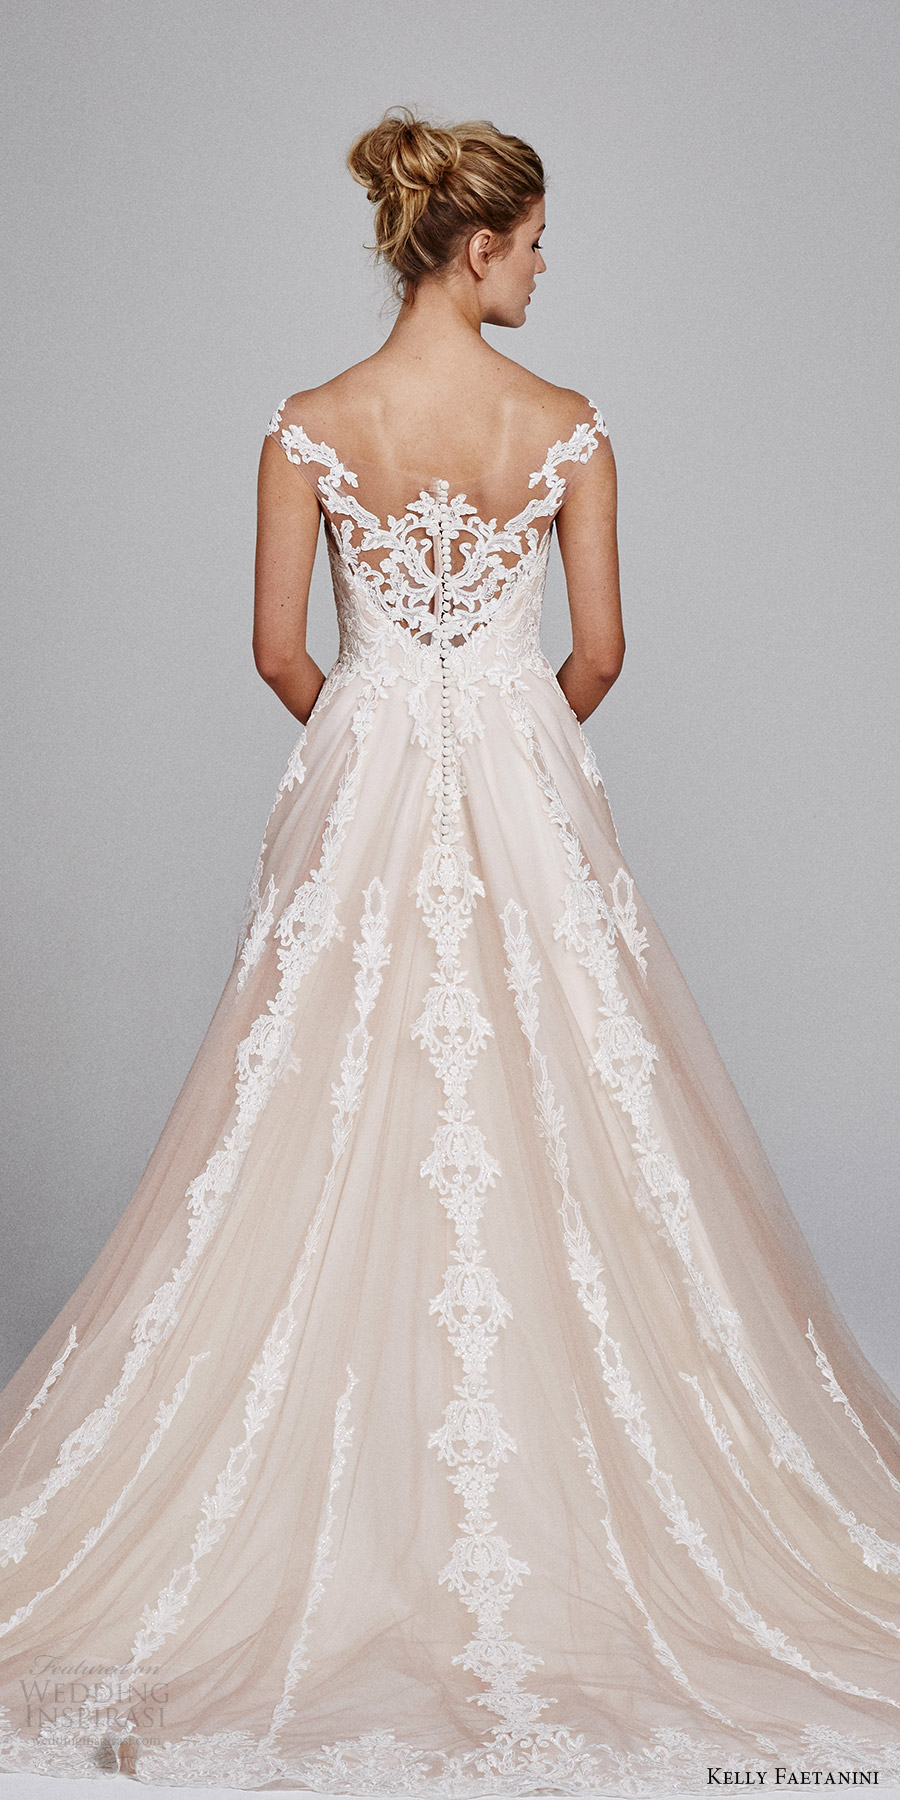 kelly faetanini bridal fall 2017 illusion off shoulder sweetheart blush alencon lace ball gown wedding dress (suri) bv